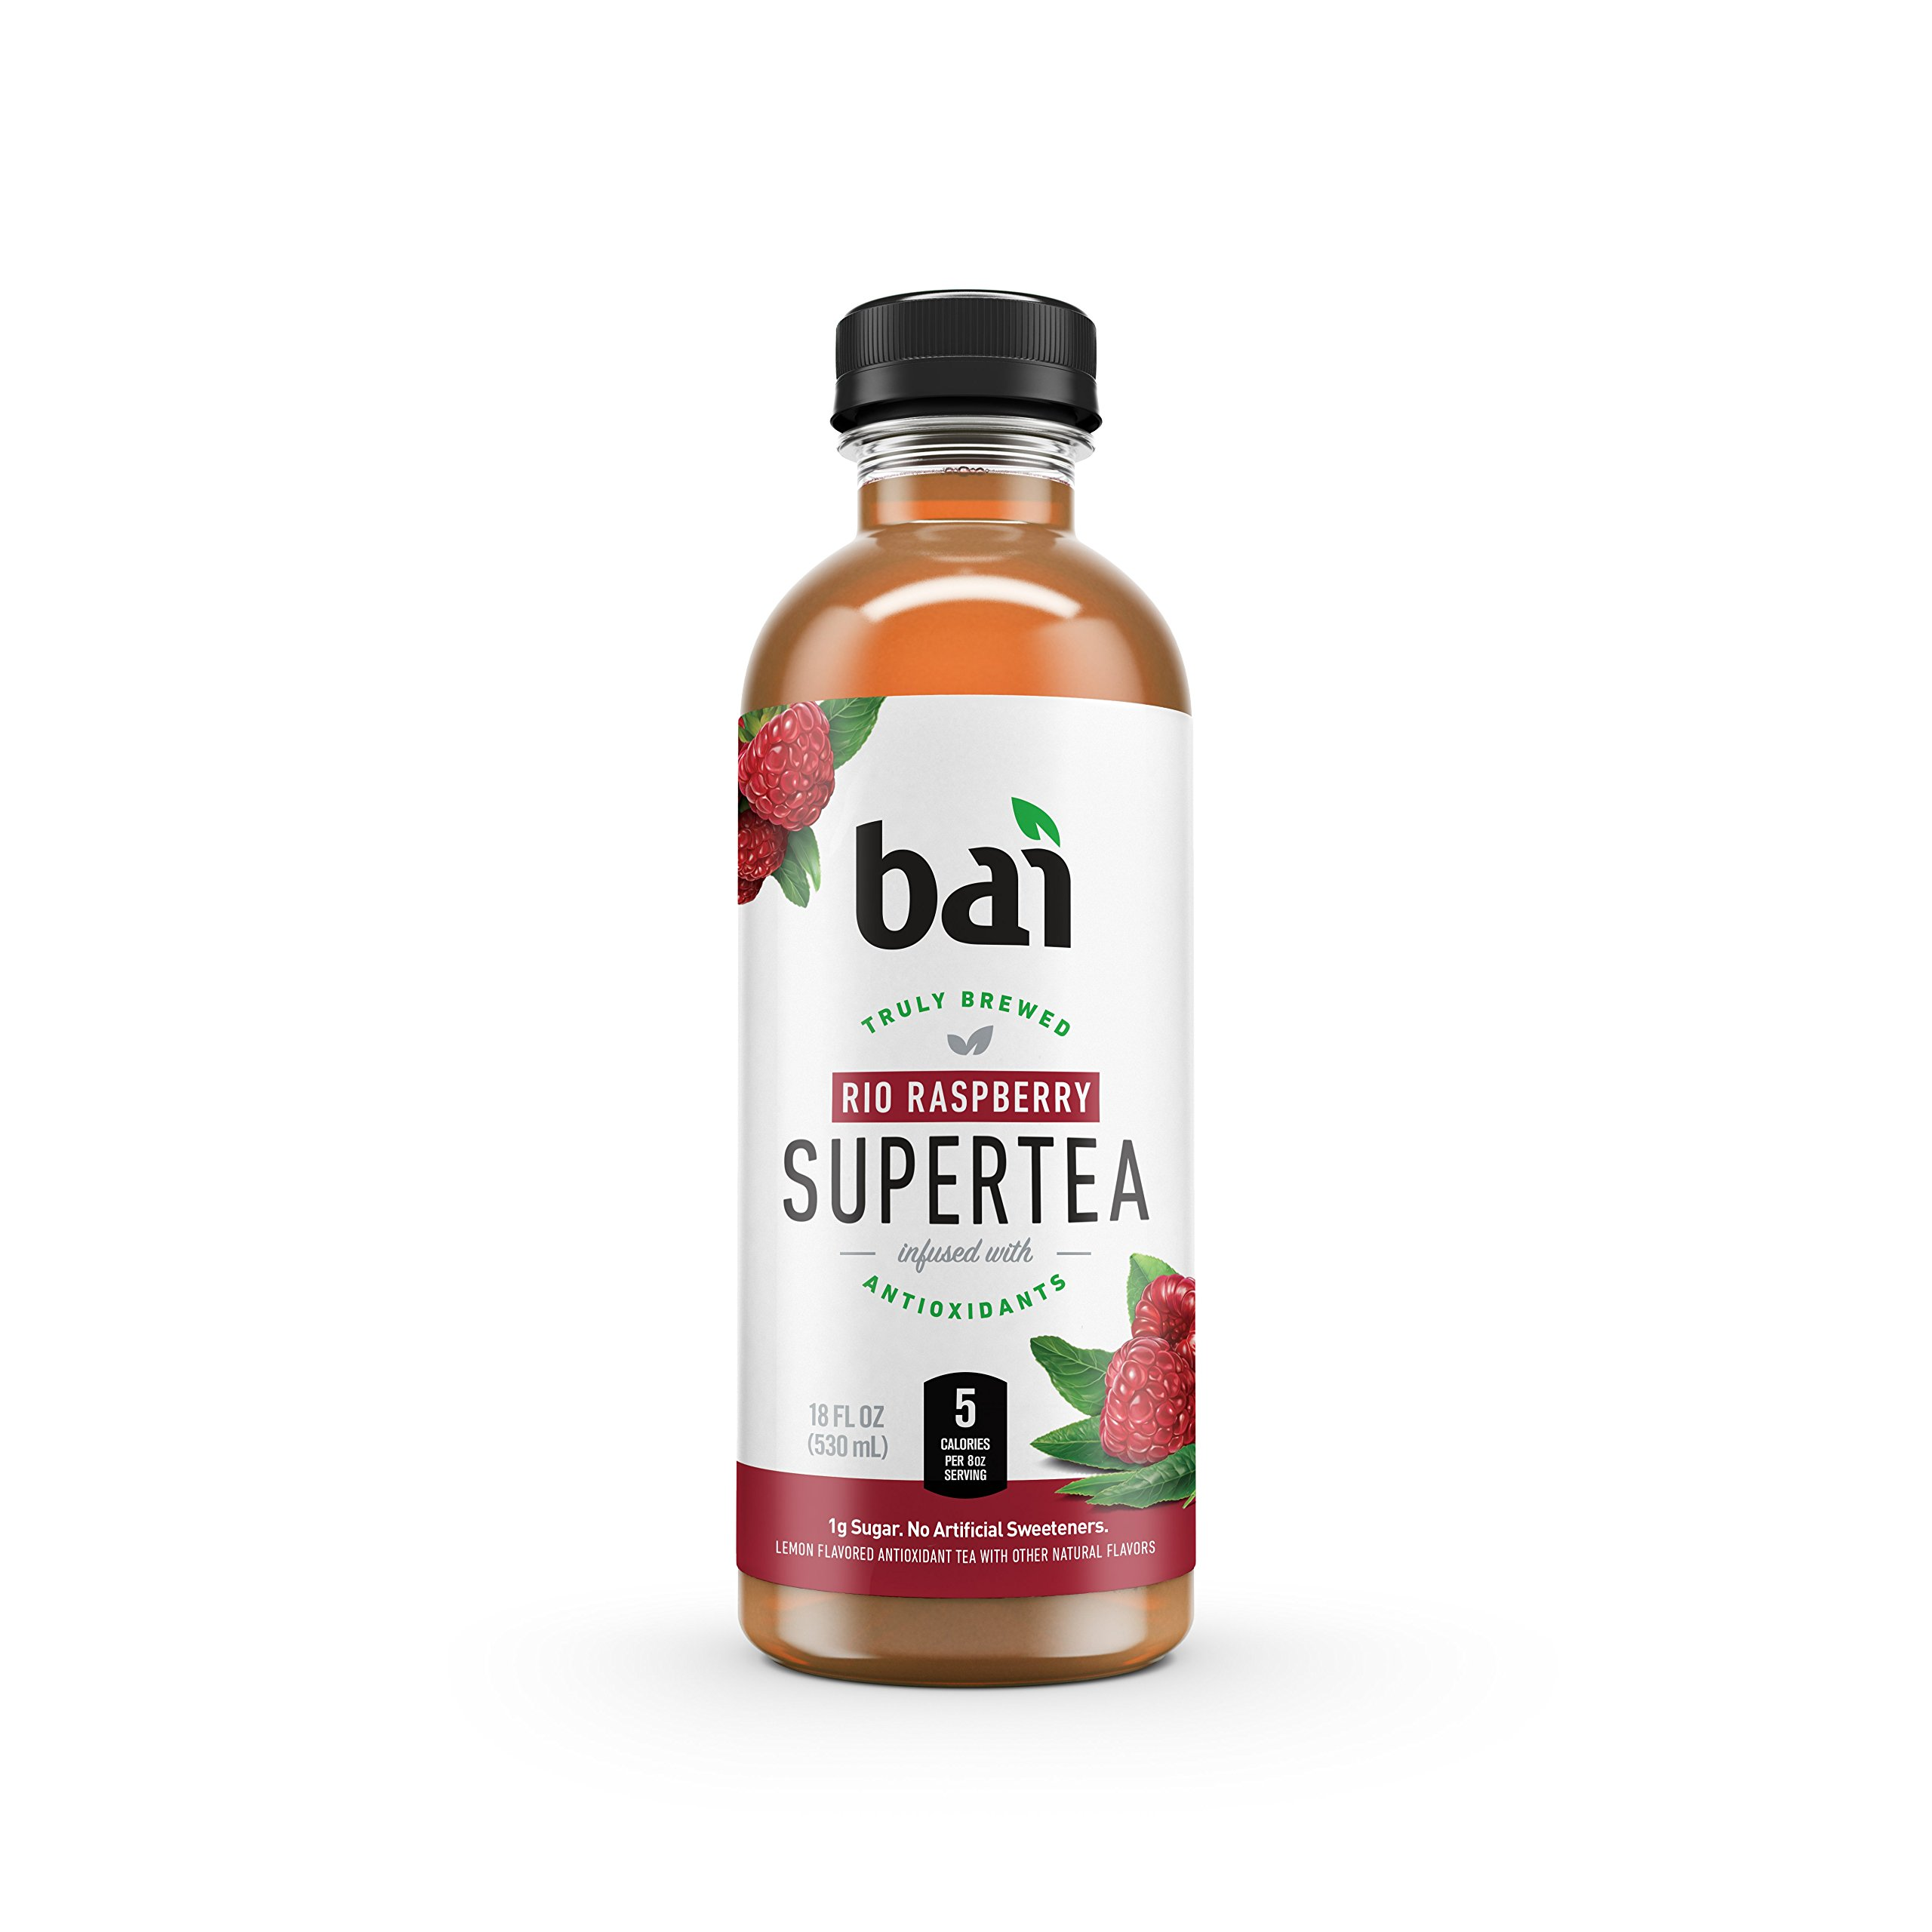 Bai Iced Tea, Rio Raspberry, Antioxidant Infused Supertea, Crafted with Real Tea (Black Tea, White Tea), 18 Fluid Ounce Bottles, 12 count